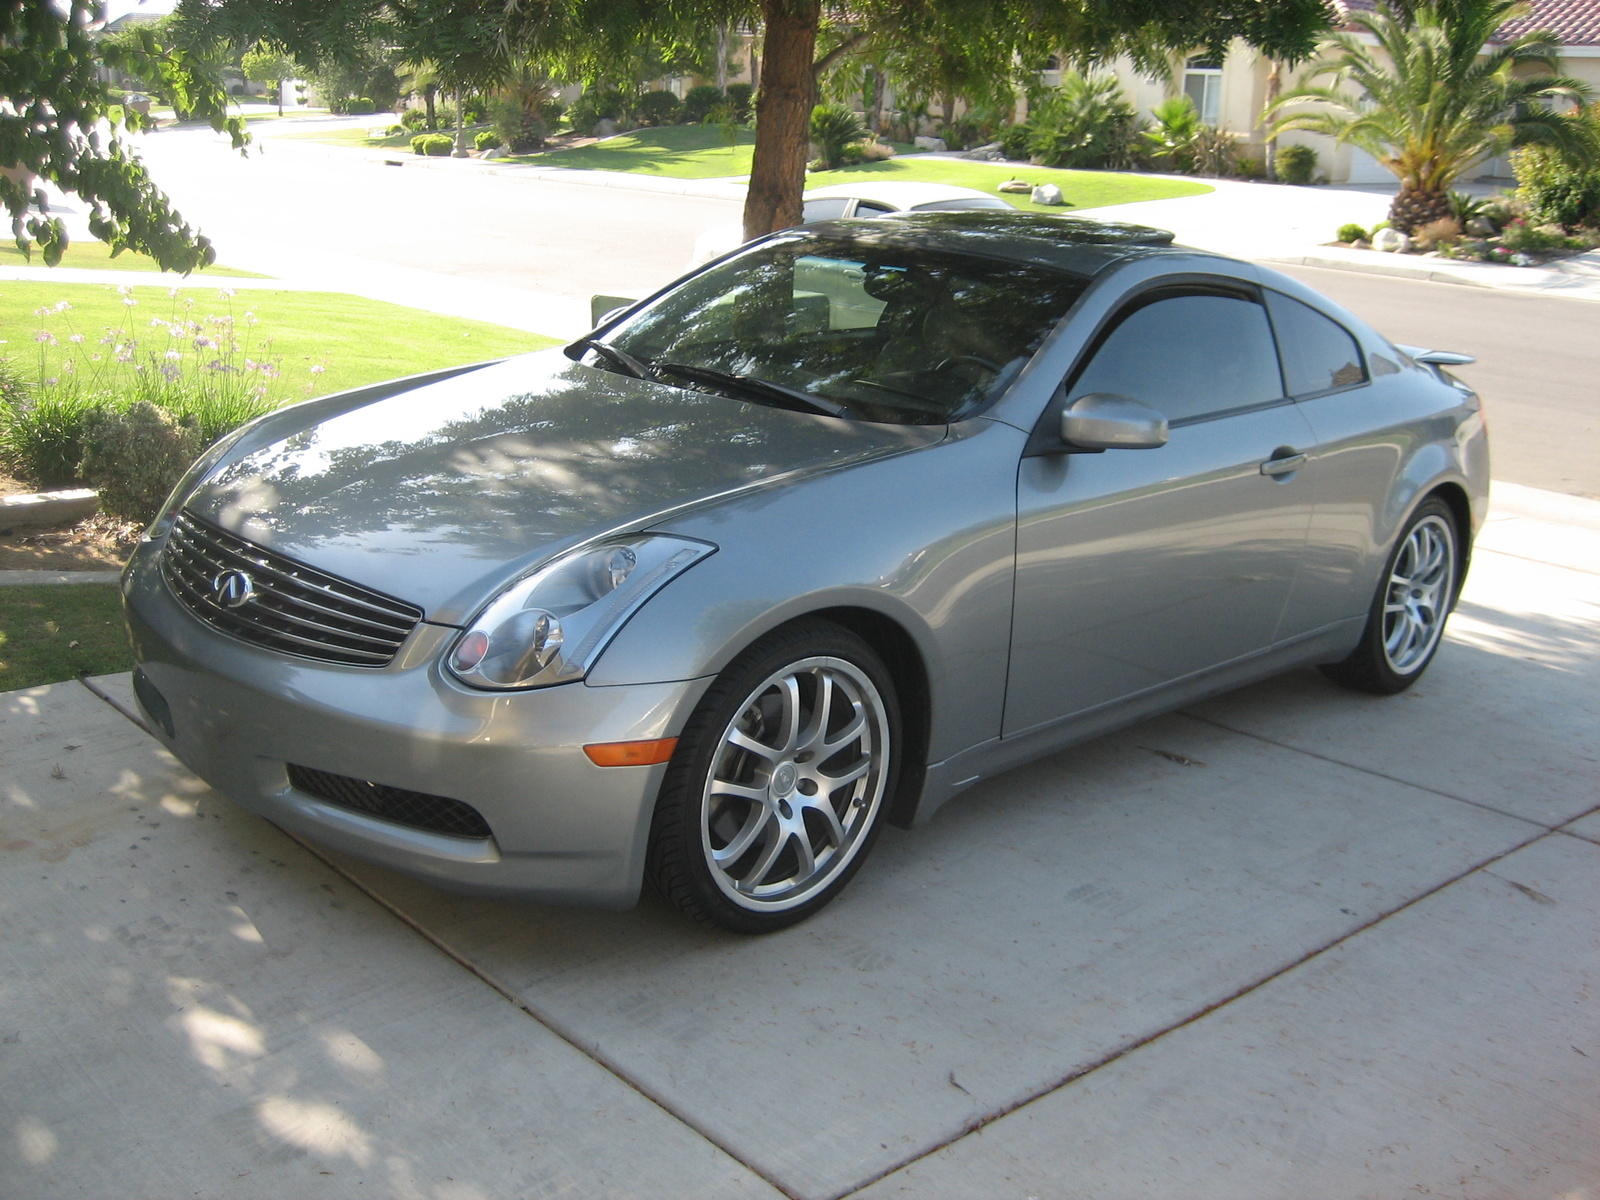 2005 infiniti g35 coupe picture exterior